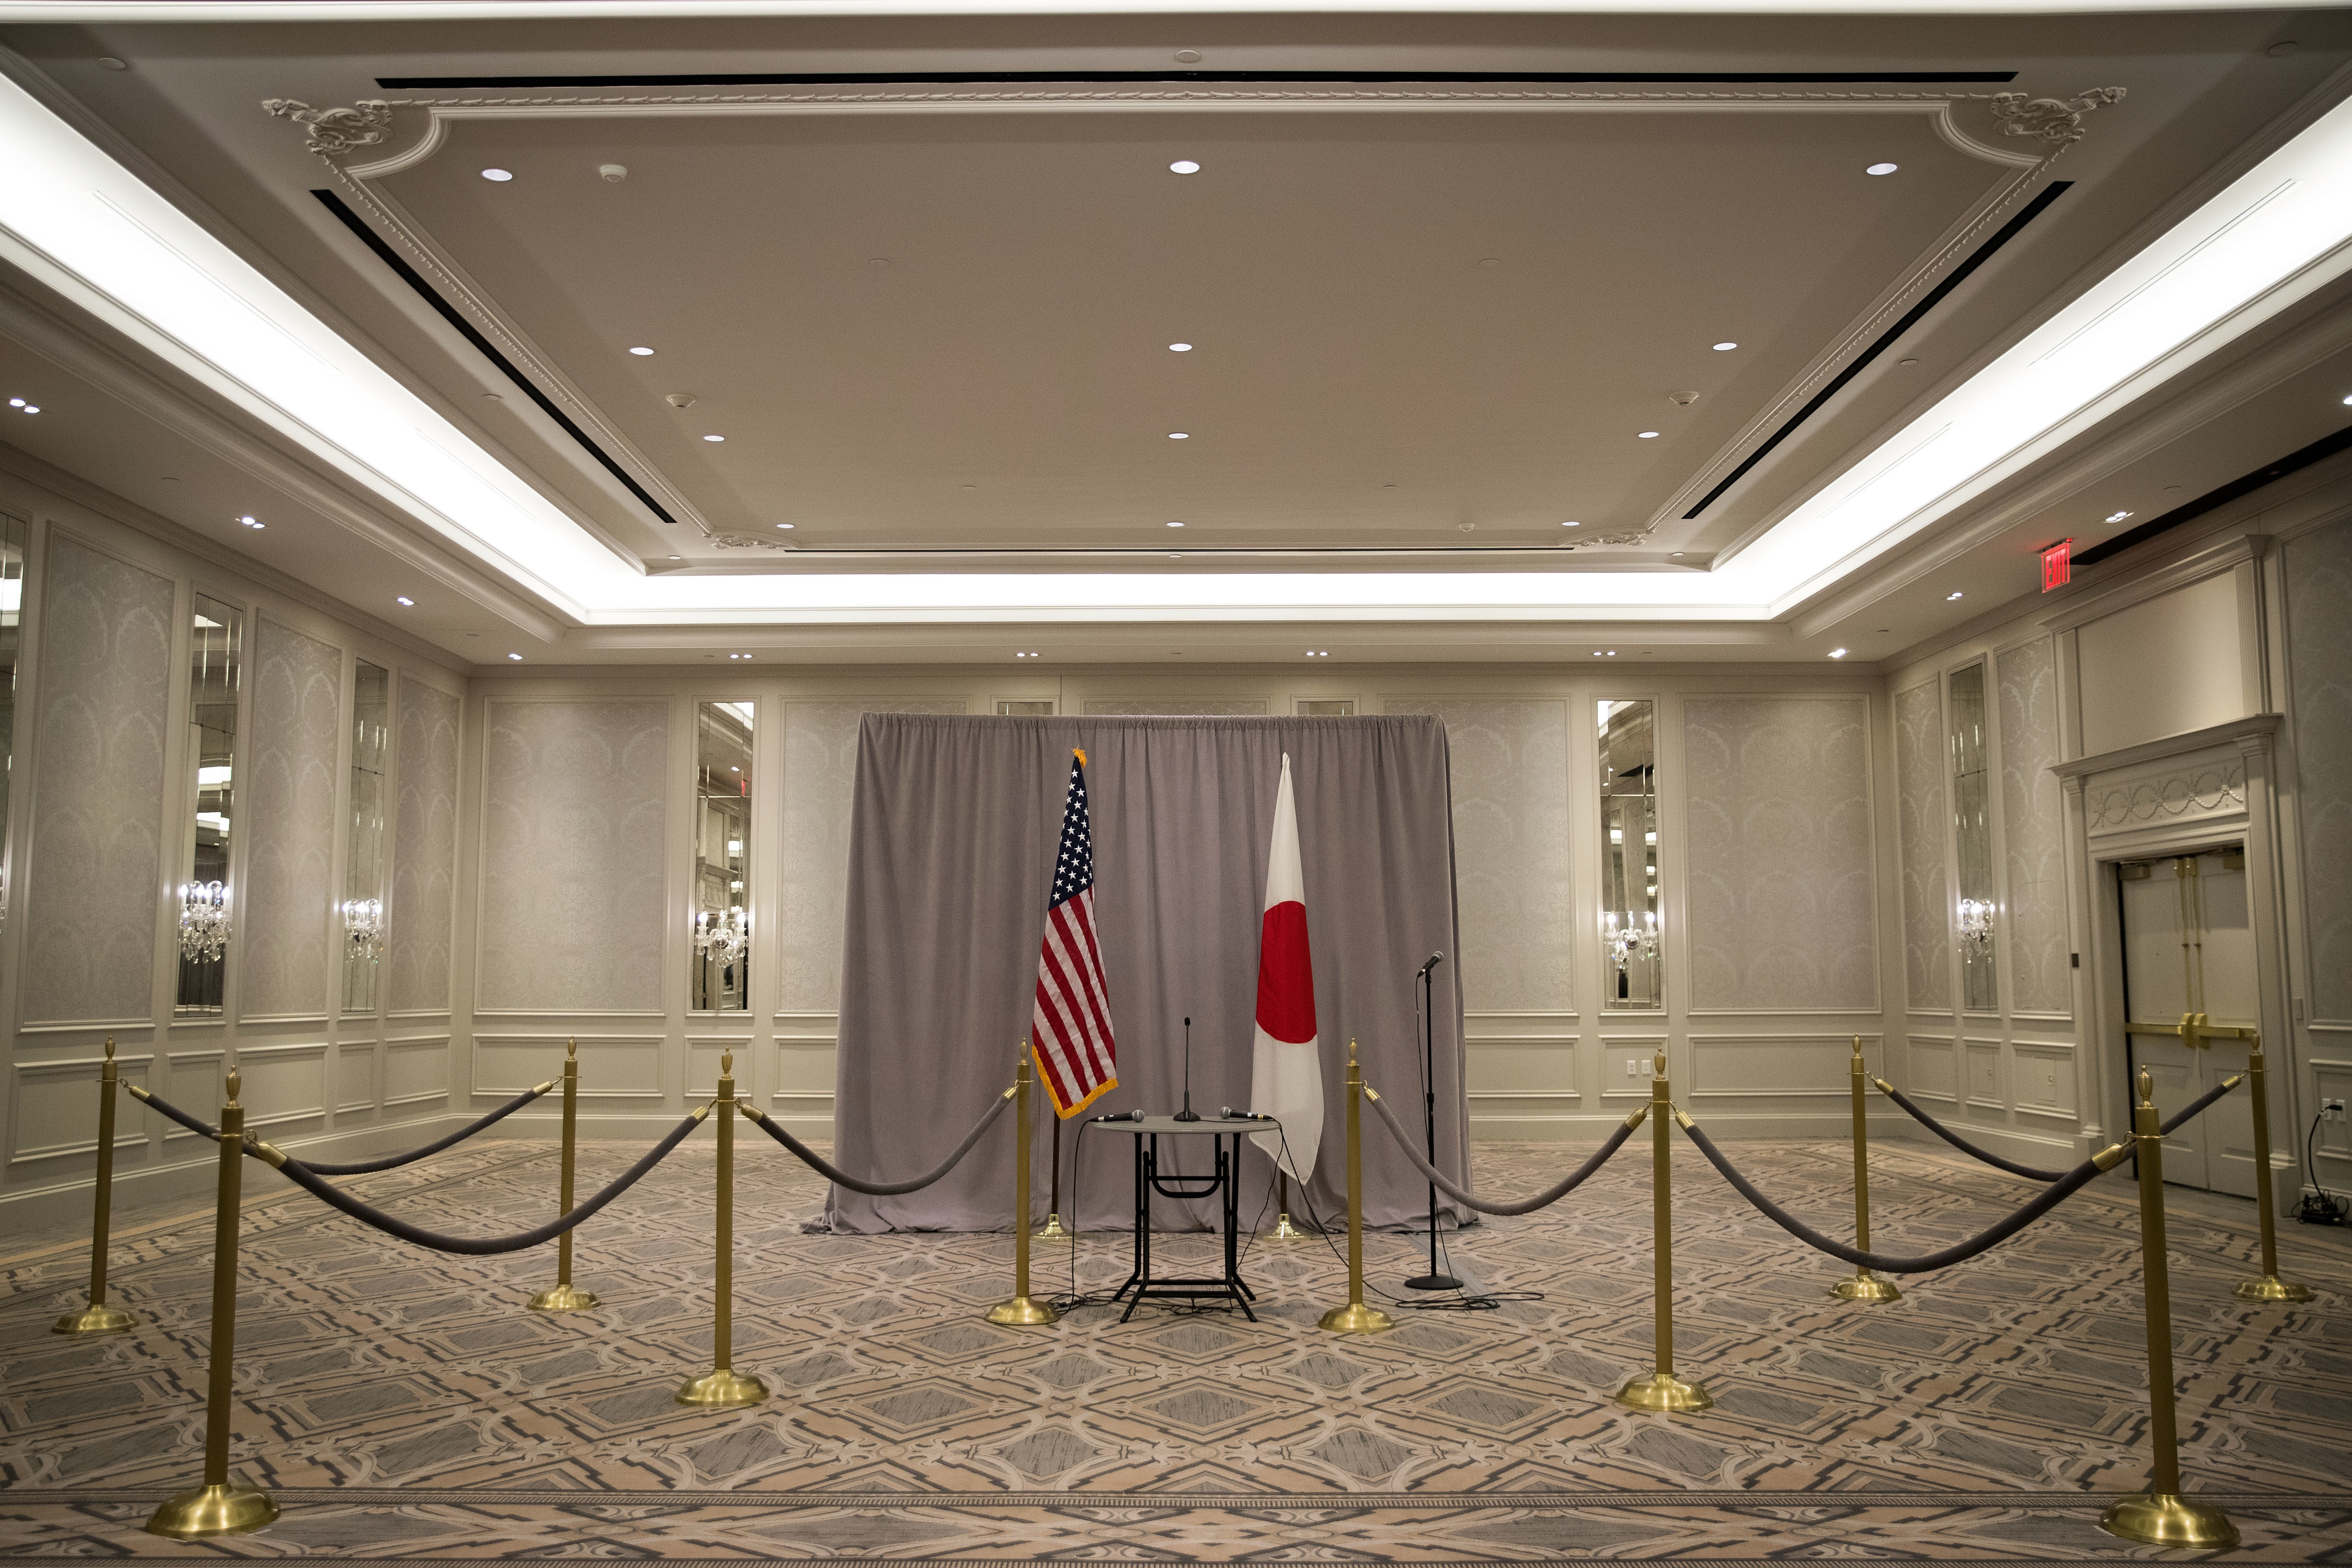 NEW YORK, NY - NOVEMBER 17: A view of the stage setup following Prime Minister of Japan Shinzo Abe's press conference following a meeting with President-elect Donald Trump, November 17, 2016 in New York City. Trump and his transition team are in the process of filling cabinet and other high level positions for the new administration.  (Photo by Drew Angerer/Getty Images)